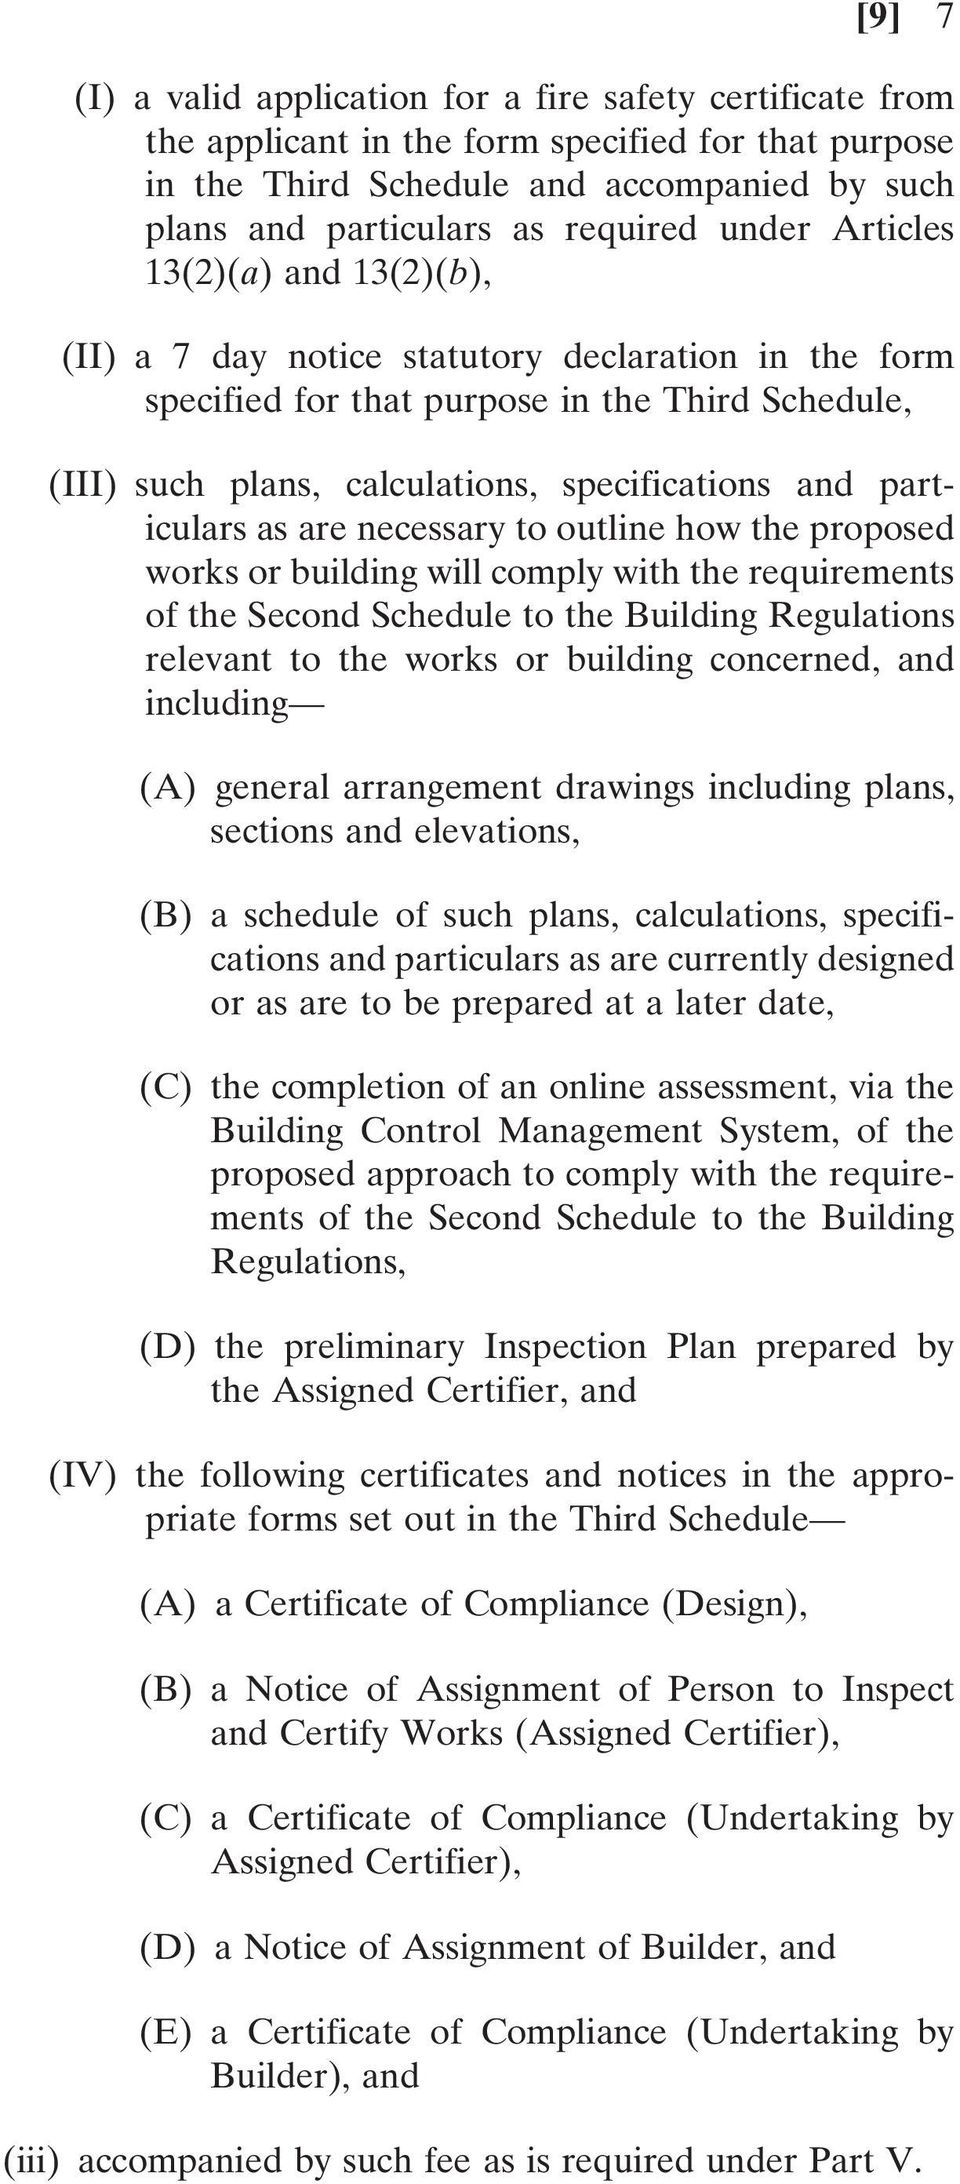 particulars as are necessary to outline how the proposed works or building will comply with the requirements of the Second Schedule to the Building Regulations relevant to the works or building